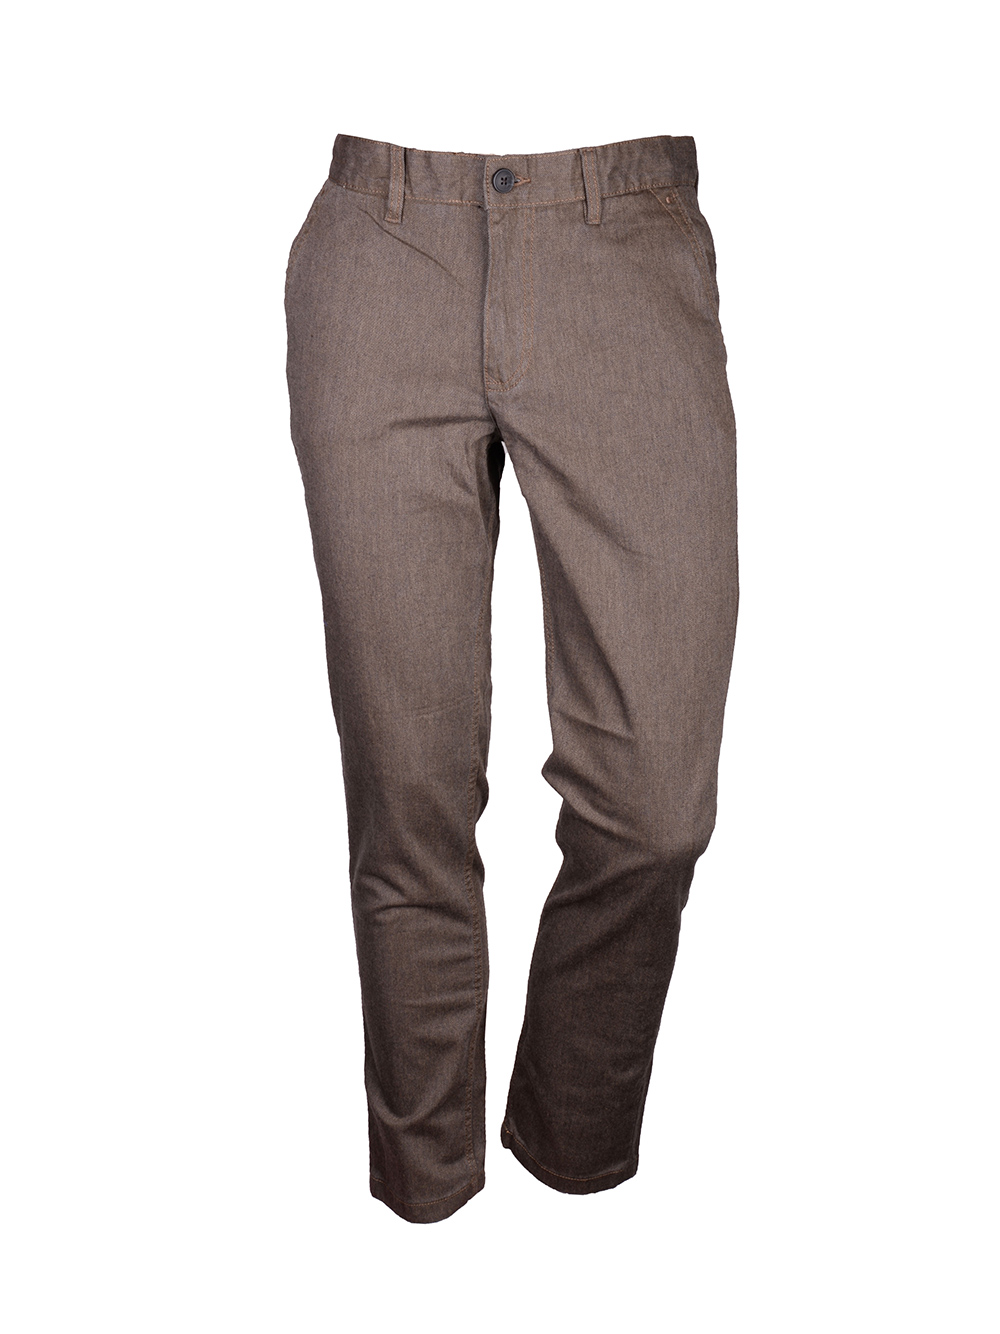 SELECTED Παντελόνι chinos 16069296 ΚΑΦΕ